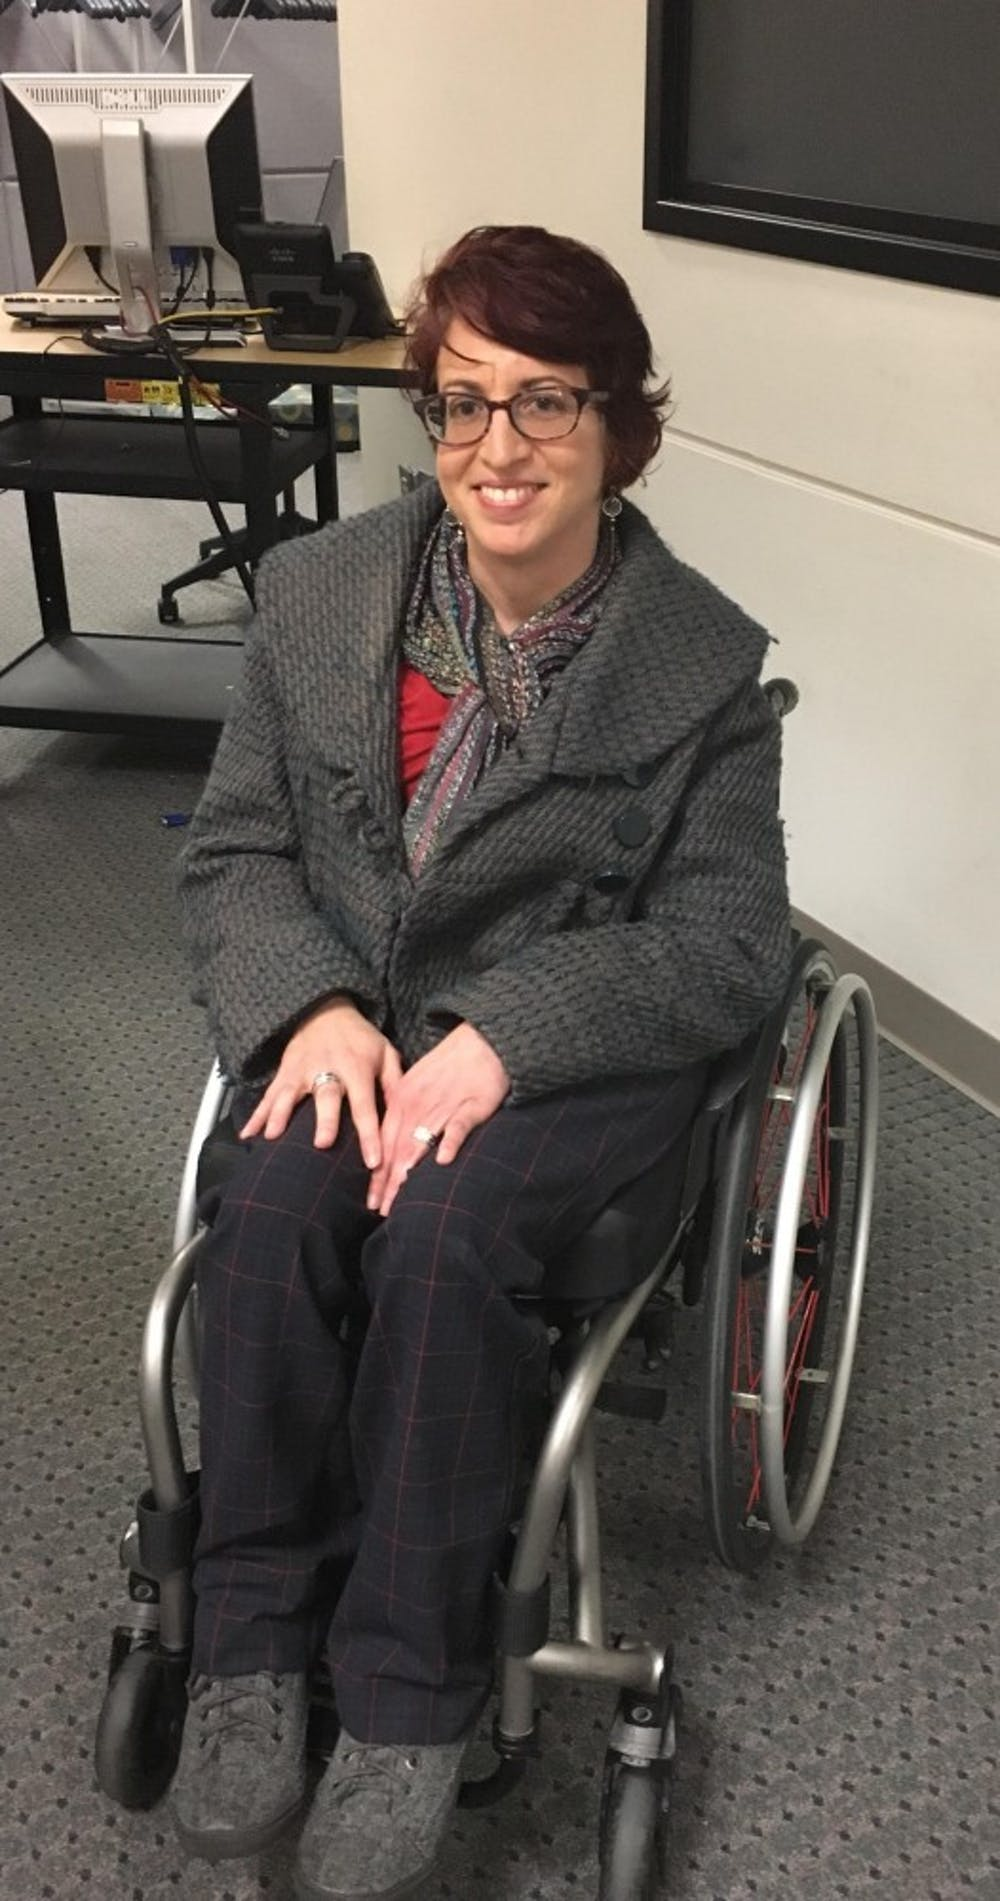 Professor of disability studies speaks abolition of institutionalization